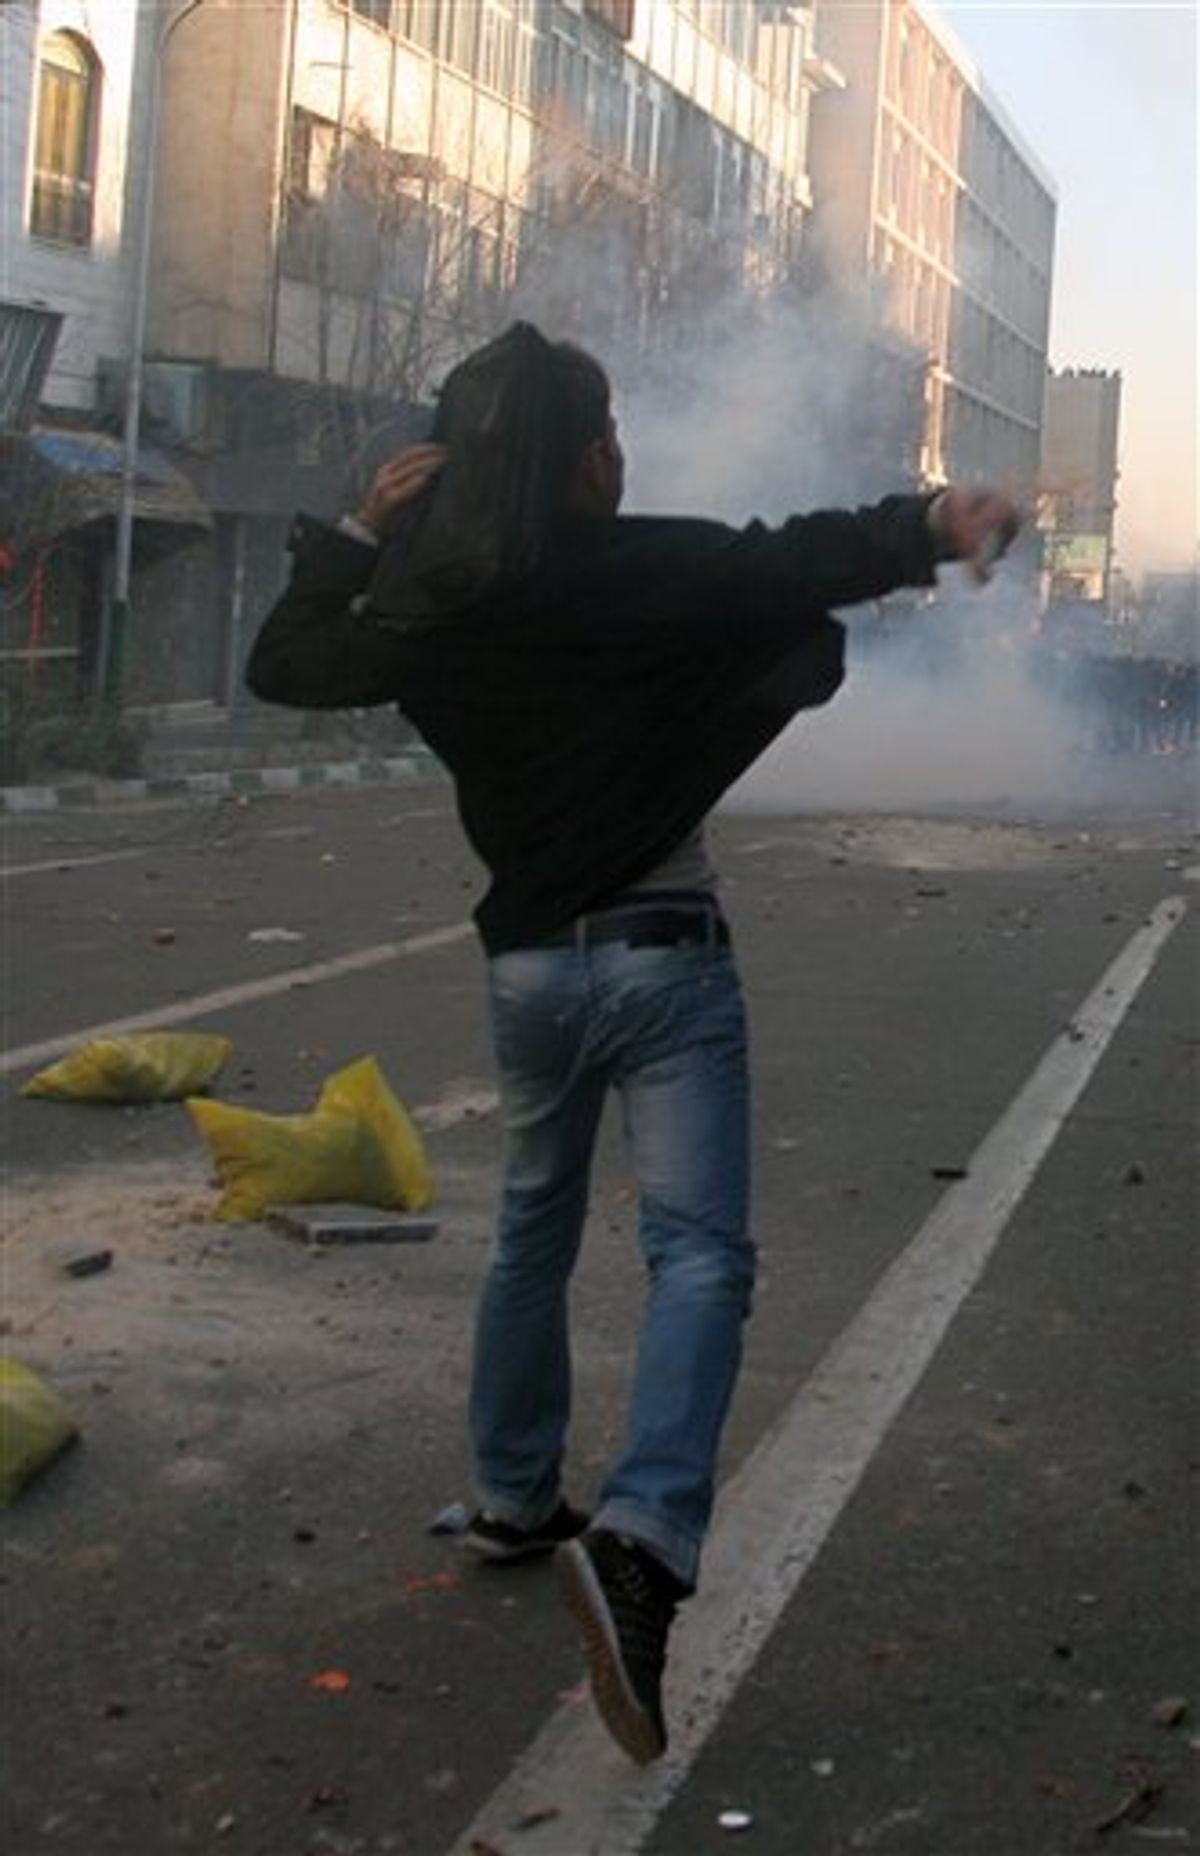 """This photo, taken by an individual not employed by the Associated Press and obtained by the AP outside Iran shows an Iranian protestor throwing stone at ant-riot police officers, during an anti-government protest in Tehran, Iran, Monday, Feb. 14, 2011. Eyewitnesses report that sporadic clashes have erupted in central Tehran's Enghelab or Revolution square between security forces and opposition protesters. The demonstrators were chanting """"death to the dictator,"""" referring to the country's hardline president that the opposition believes was reelected through fraud in 2009. (AP Photo) EDITORS NOTE AS A RESULT OF AN OFFICIAL IRANIAN GOVERNMENT BAN ON FOREIGN MEDIA COVERING SOME EVENTS IN IRAN, THE AP WAS PREVENTED FROM INDEPENDENT ACCESS TO THIS EVENT (AP)"""